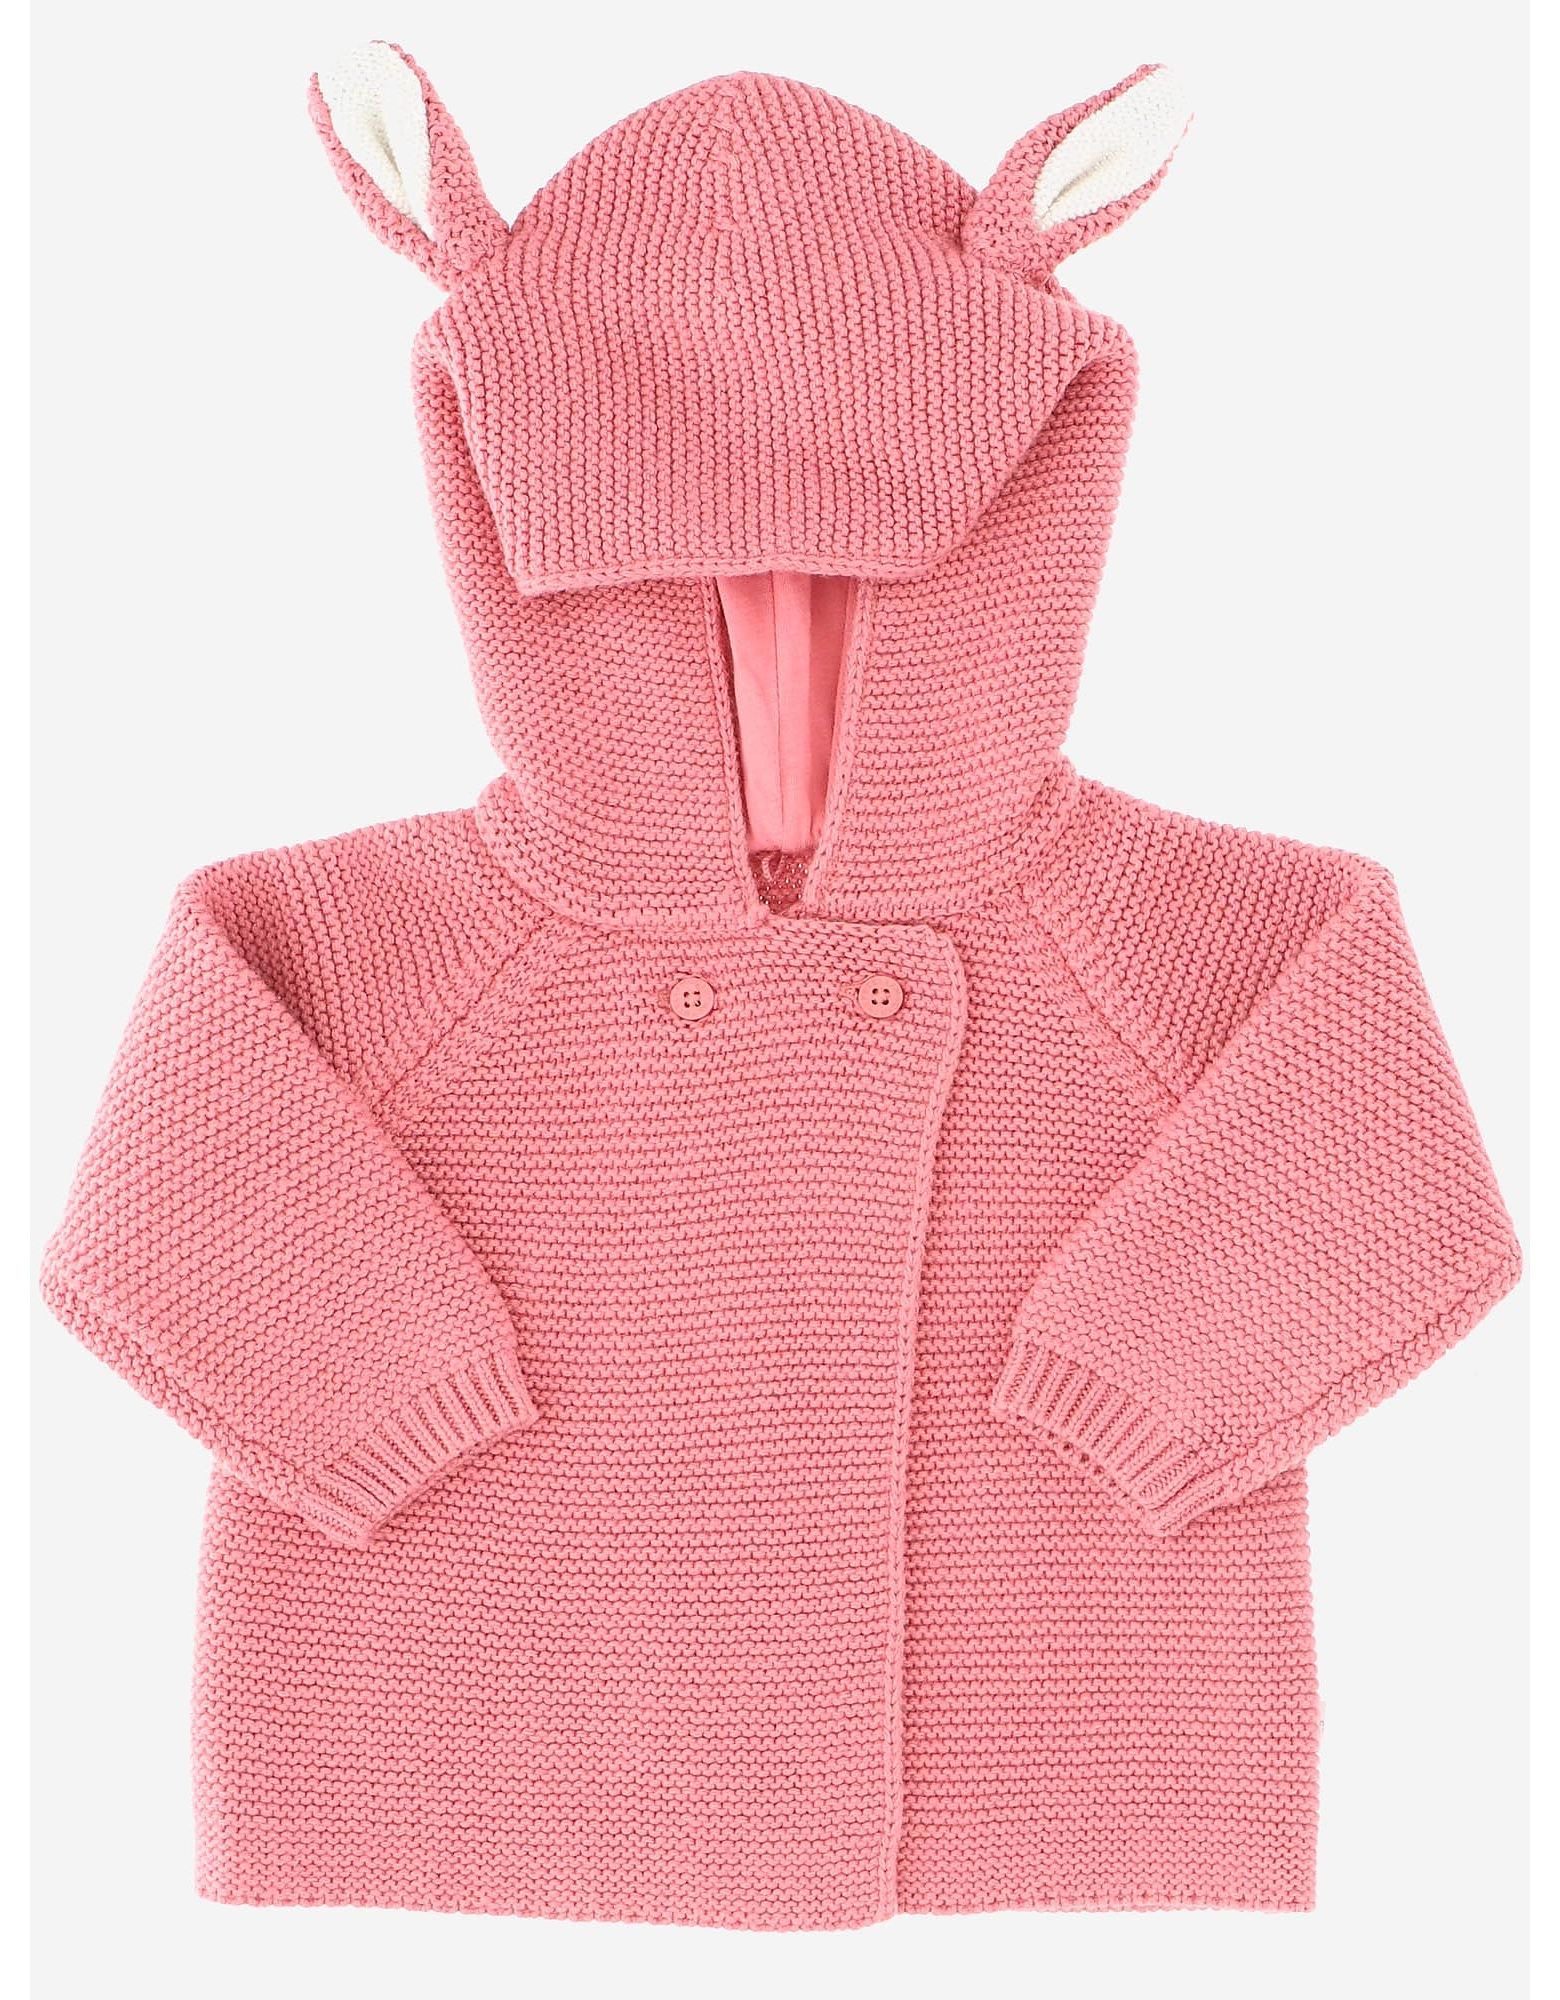 Stella McCartney Designer Girl's Clothing, Hooded Cotton Blend knit Girl's Cardigan